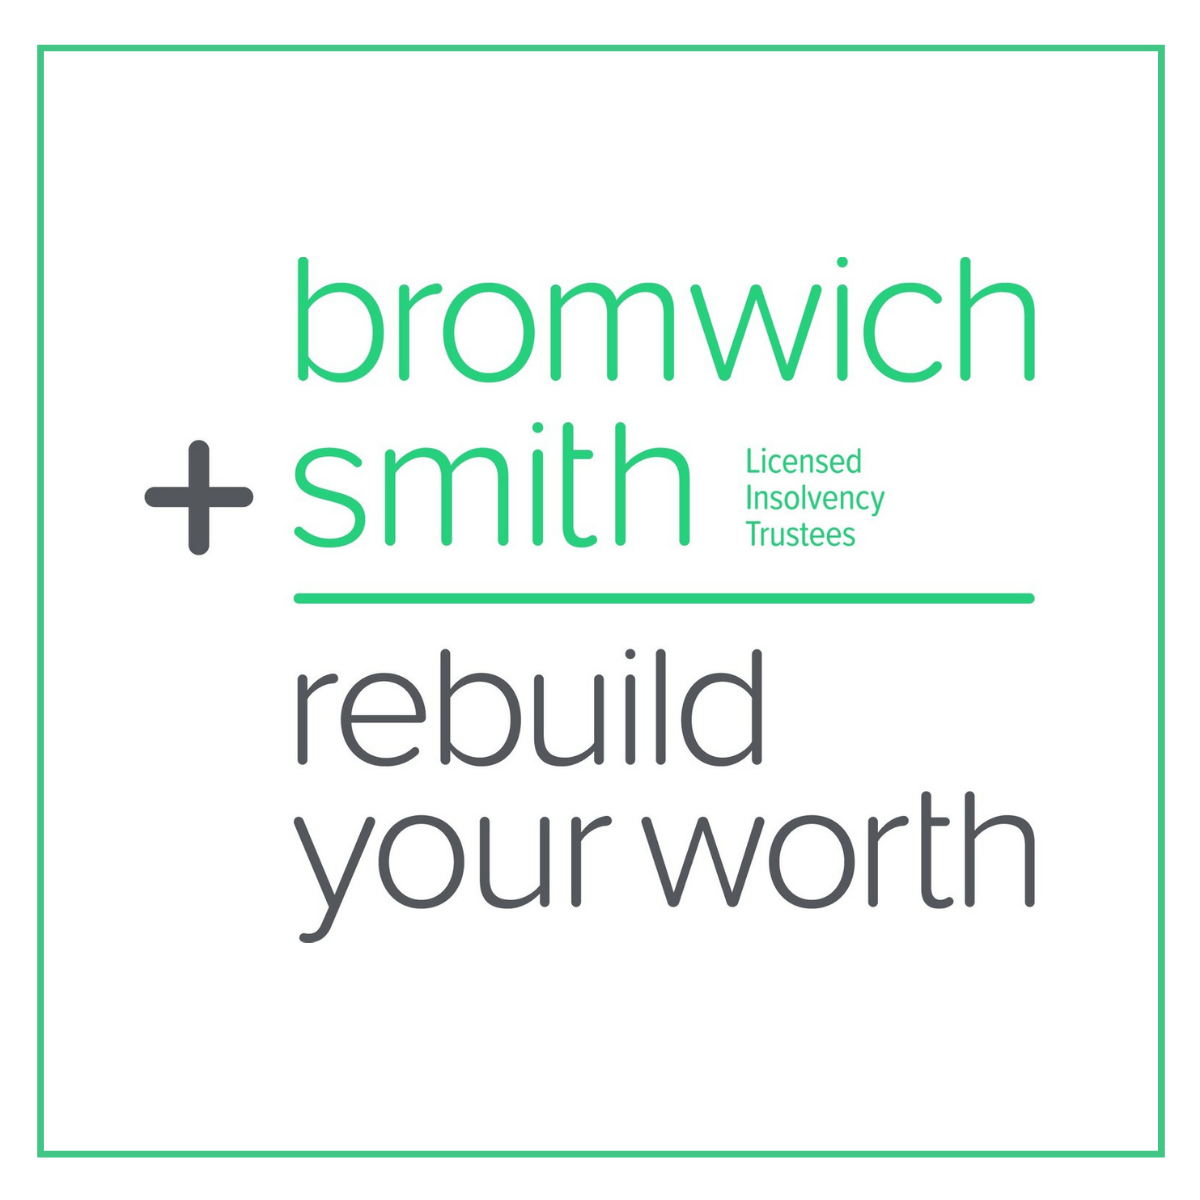 Bromwich+Smith ⎯ Helping Canadians Rebuild Their Worth